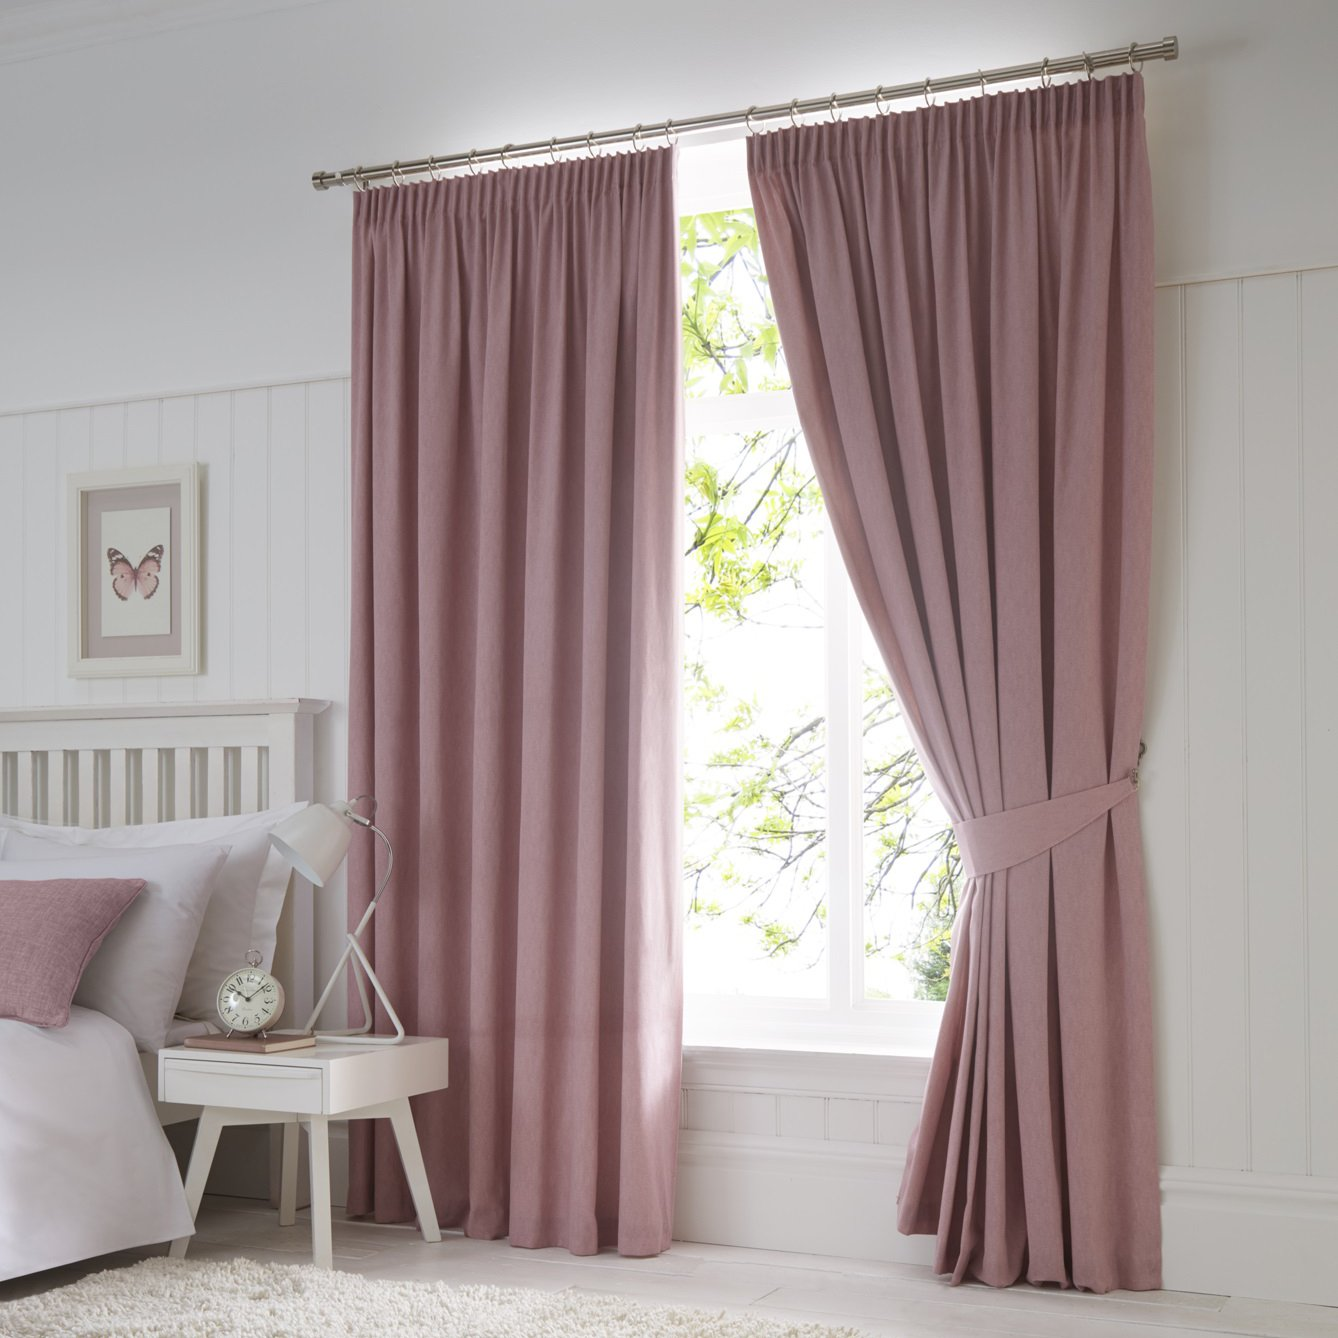 Just Contempo 90x72 Modern Blackout Pencil Pleat Curtains Fully Lined Blush Pink